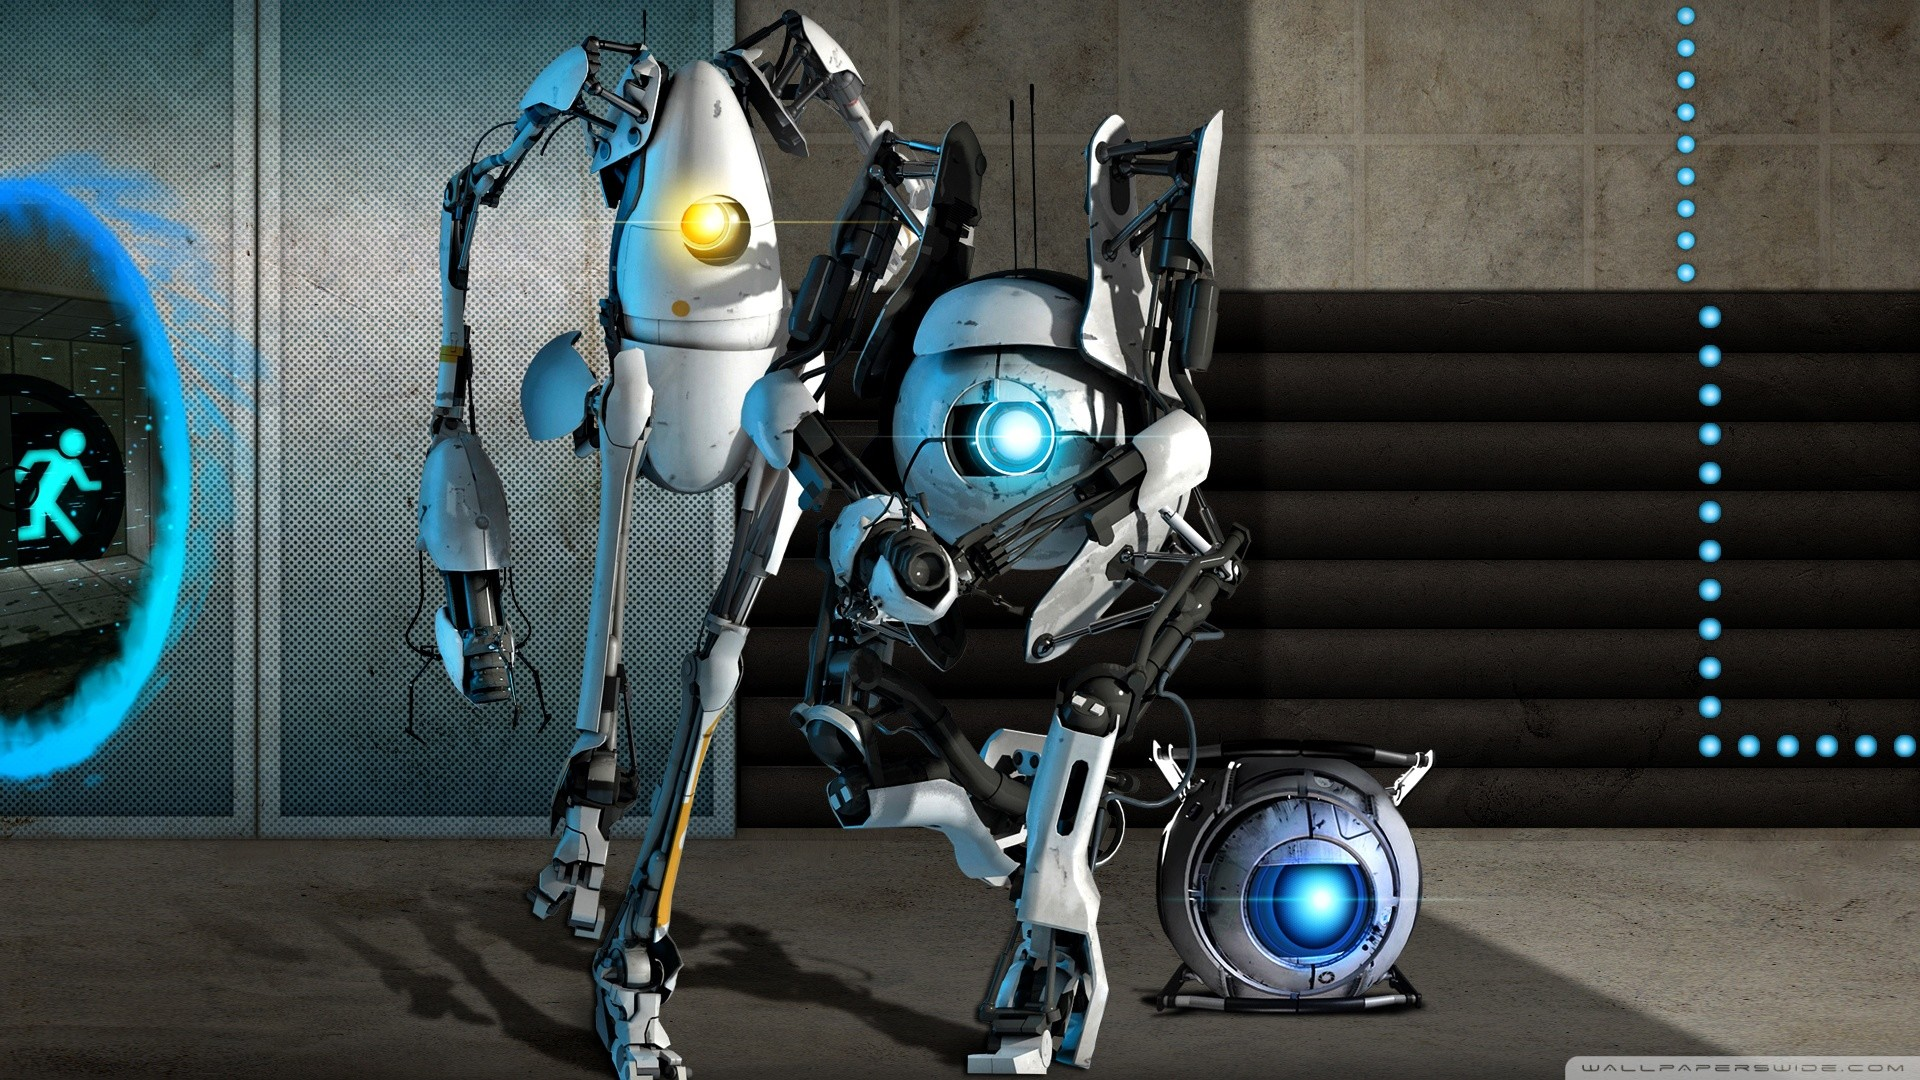 Portal 2 Wallpaper Hd Wallpapertag